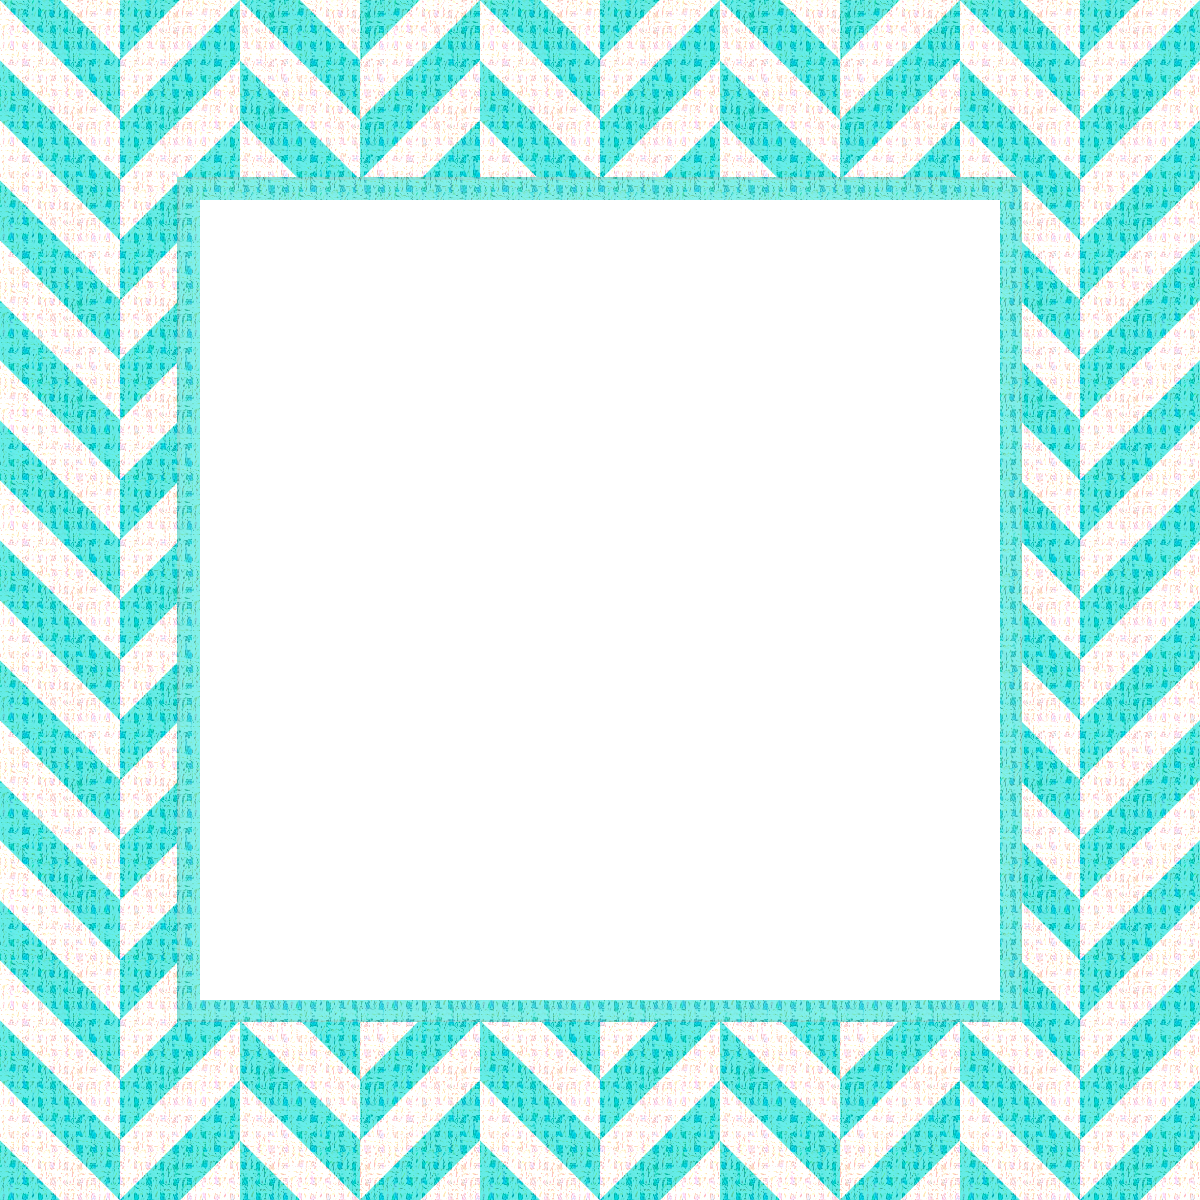 Photography clipart template. Chevron frame crafthubs tags